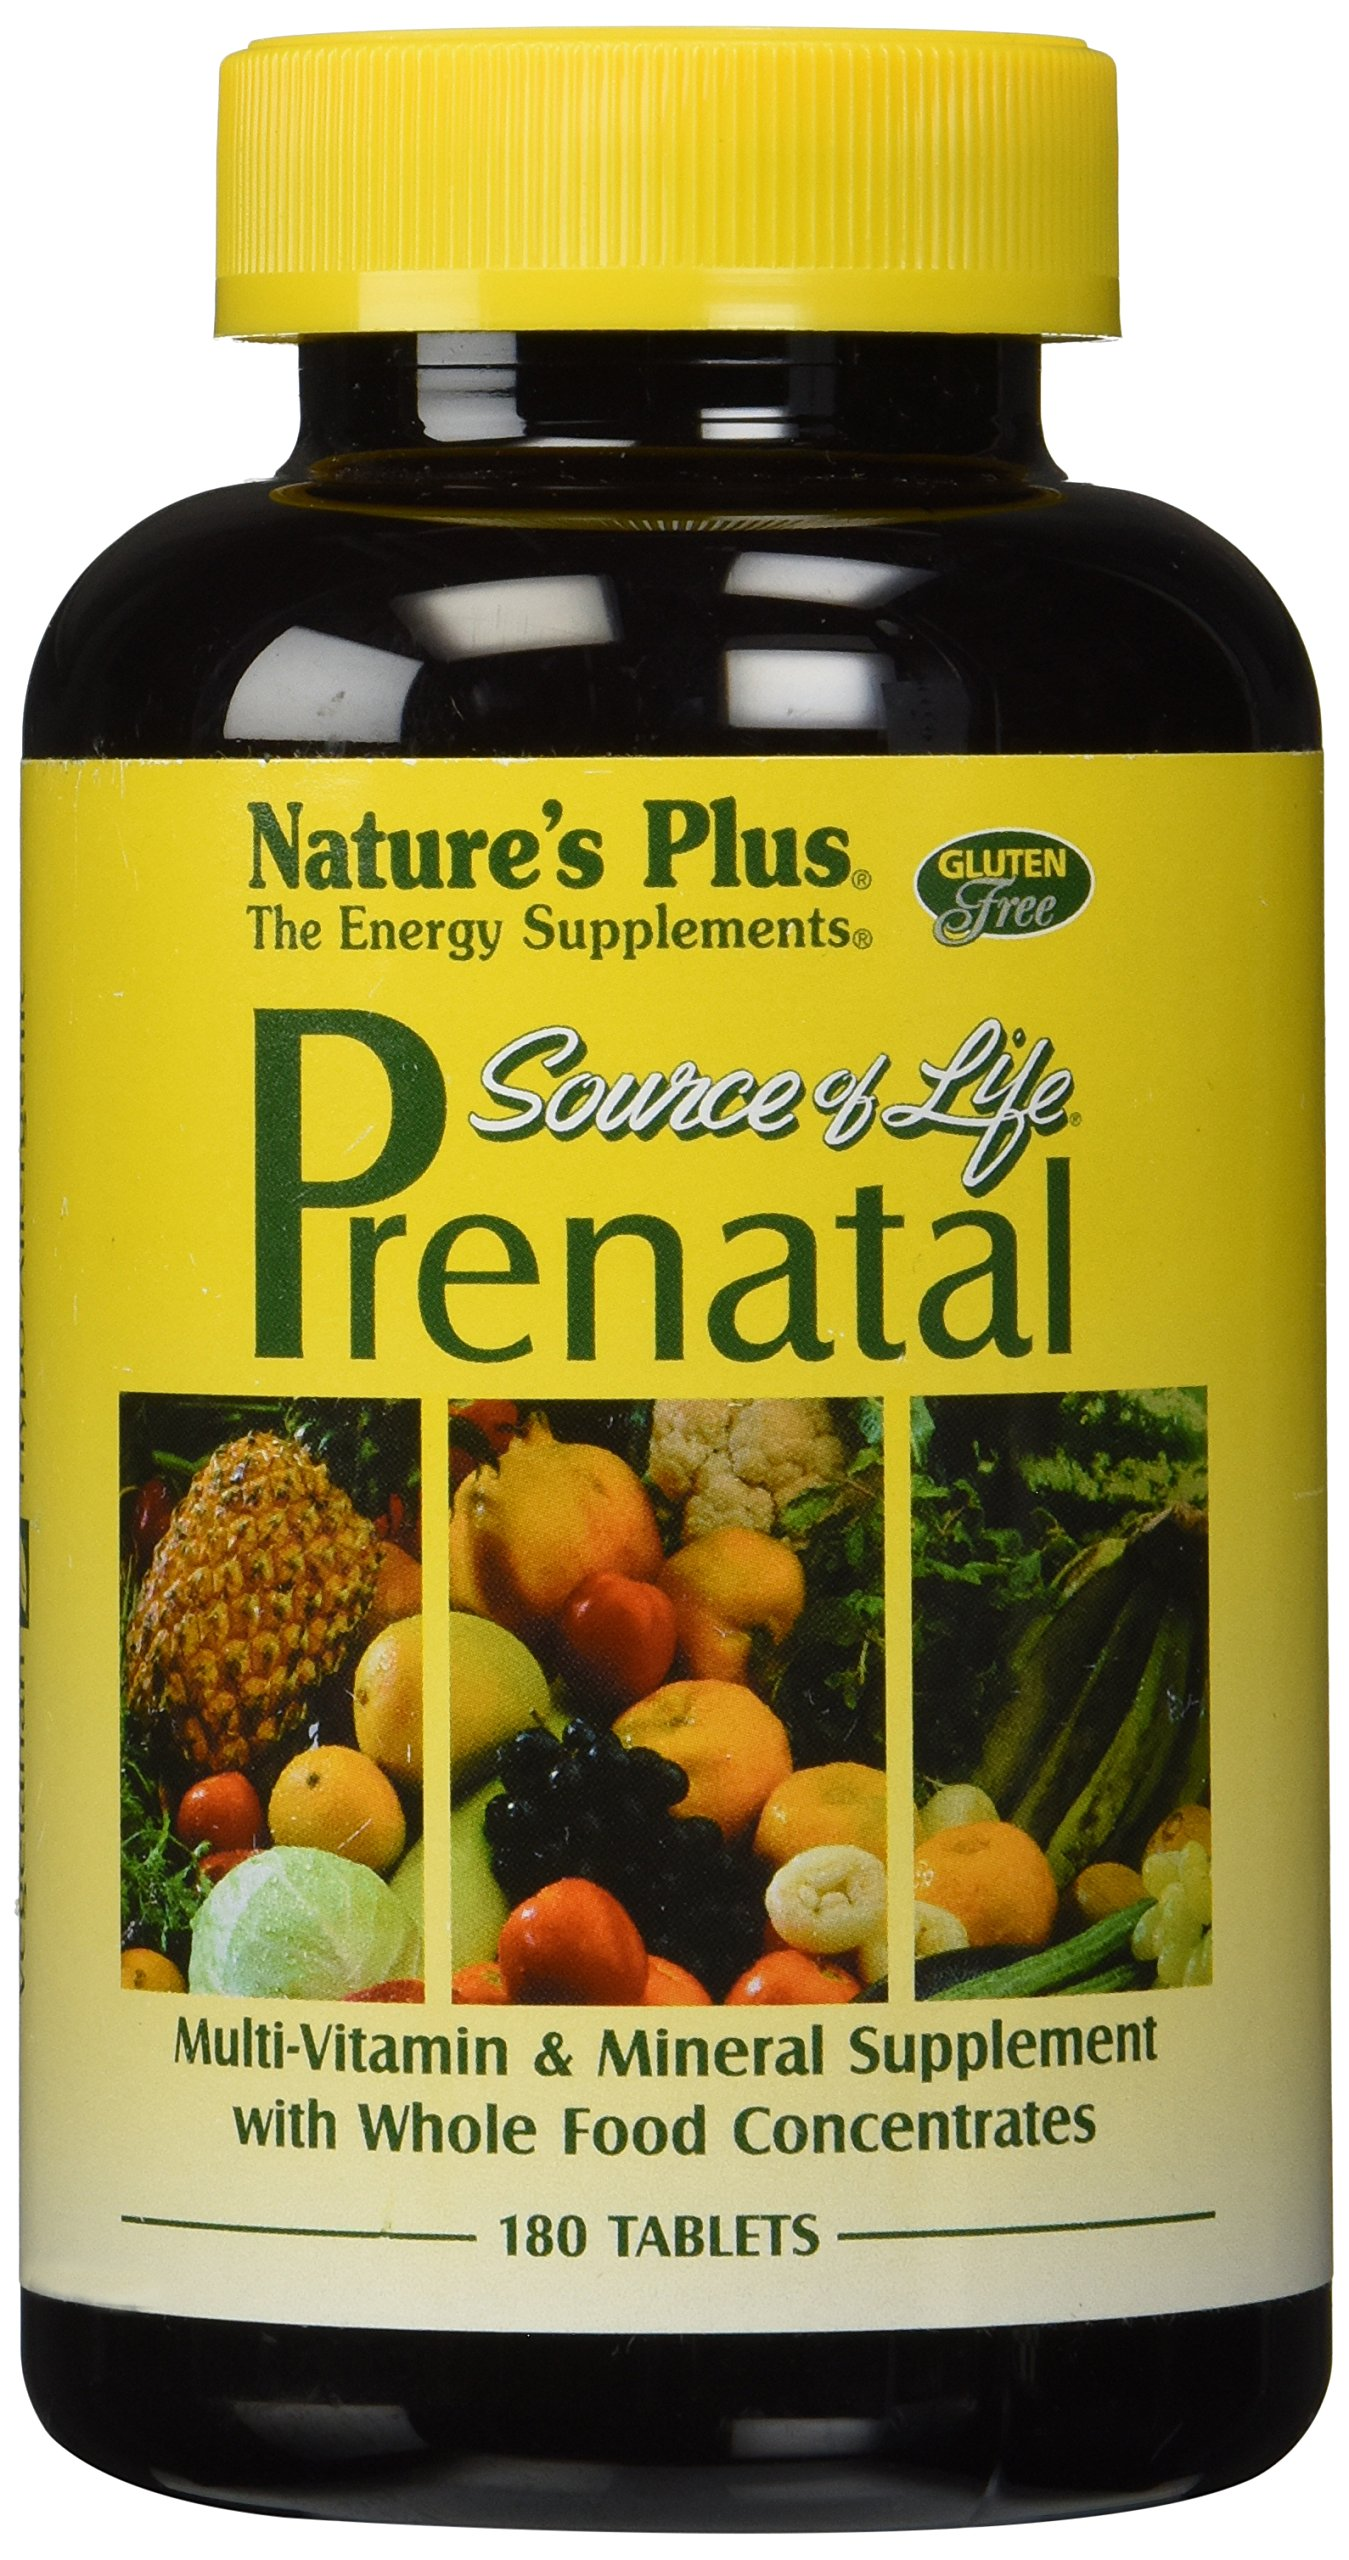 Natures Plus Source of Life Prenatal - 800 mcg Folate, 180 Vegetarian Tablets - All-Natural Whole Food Prenatal Vitamins and Minerals - Gluten Free - 90 Servings